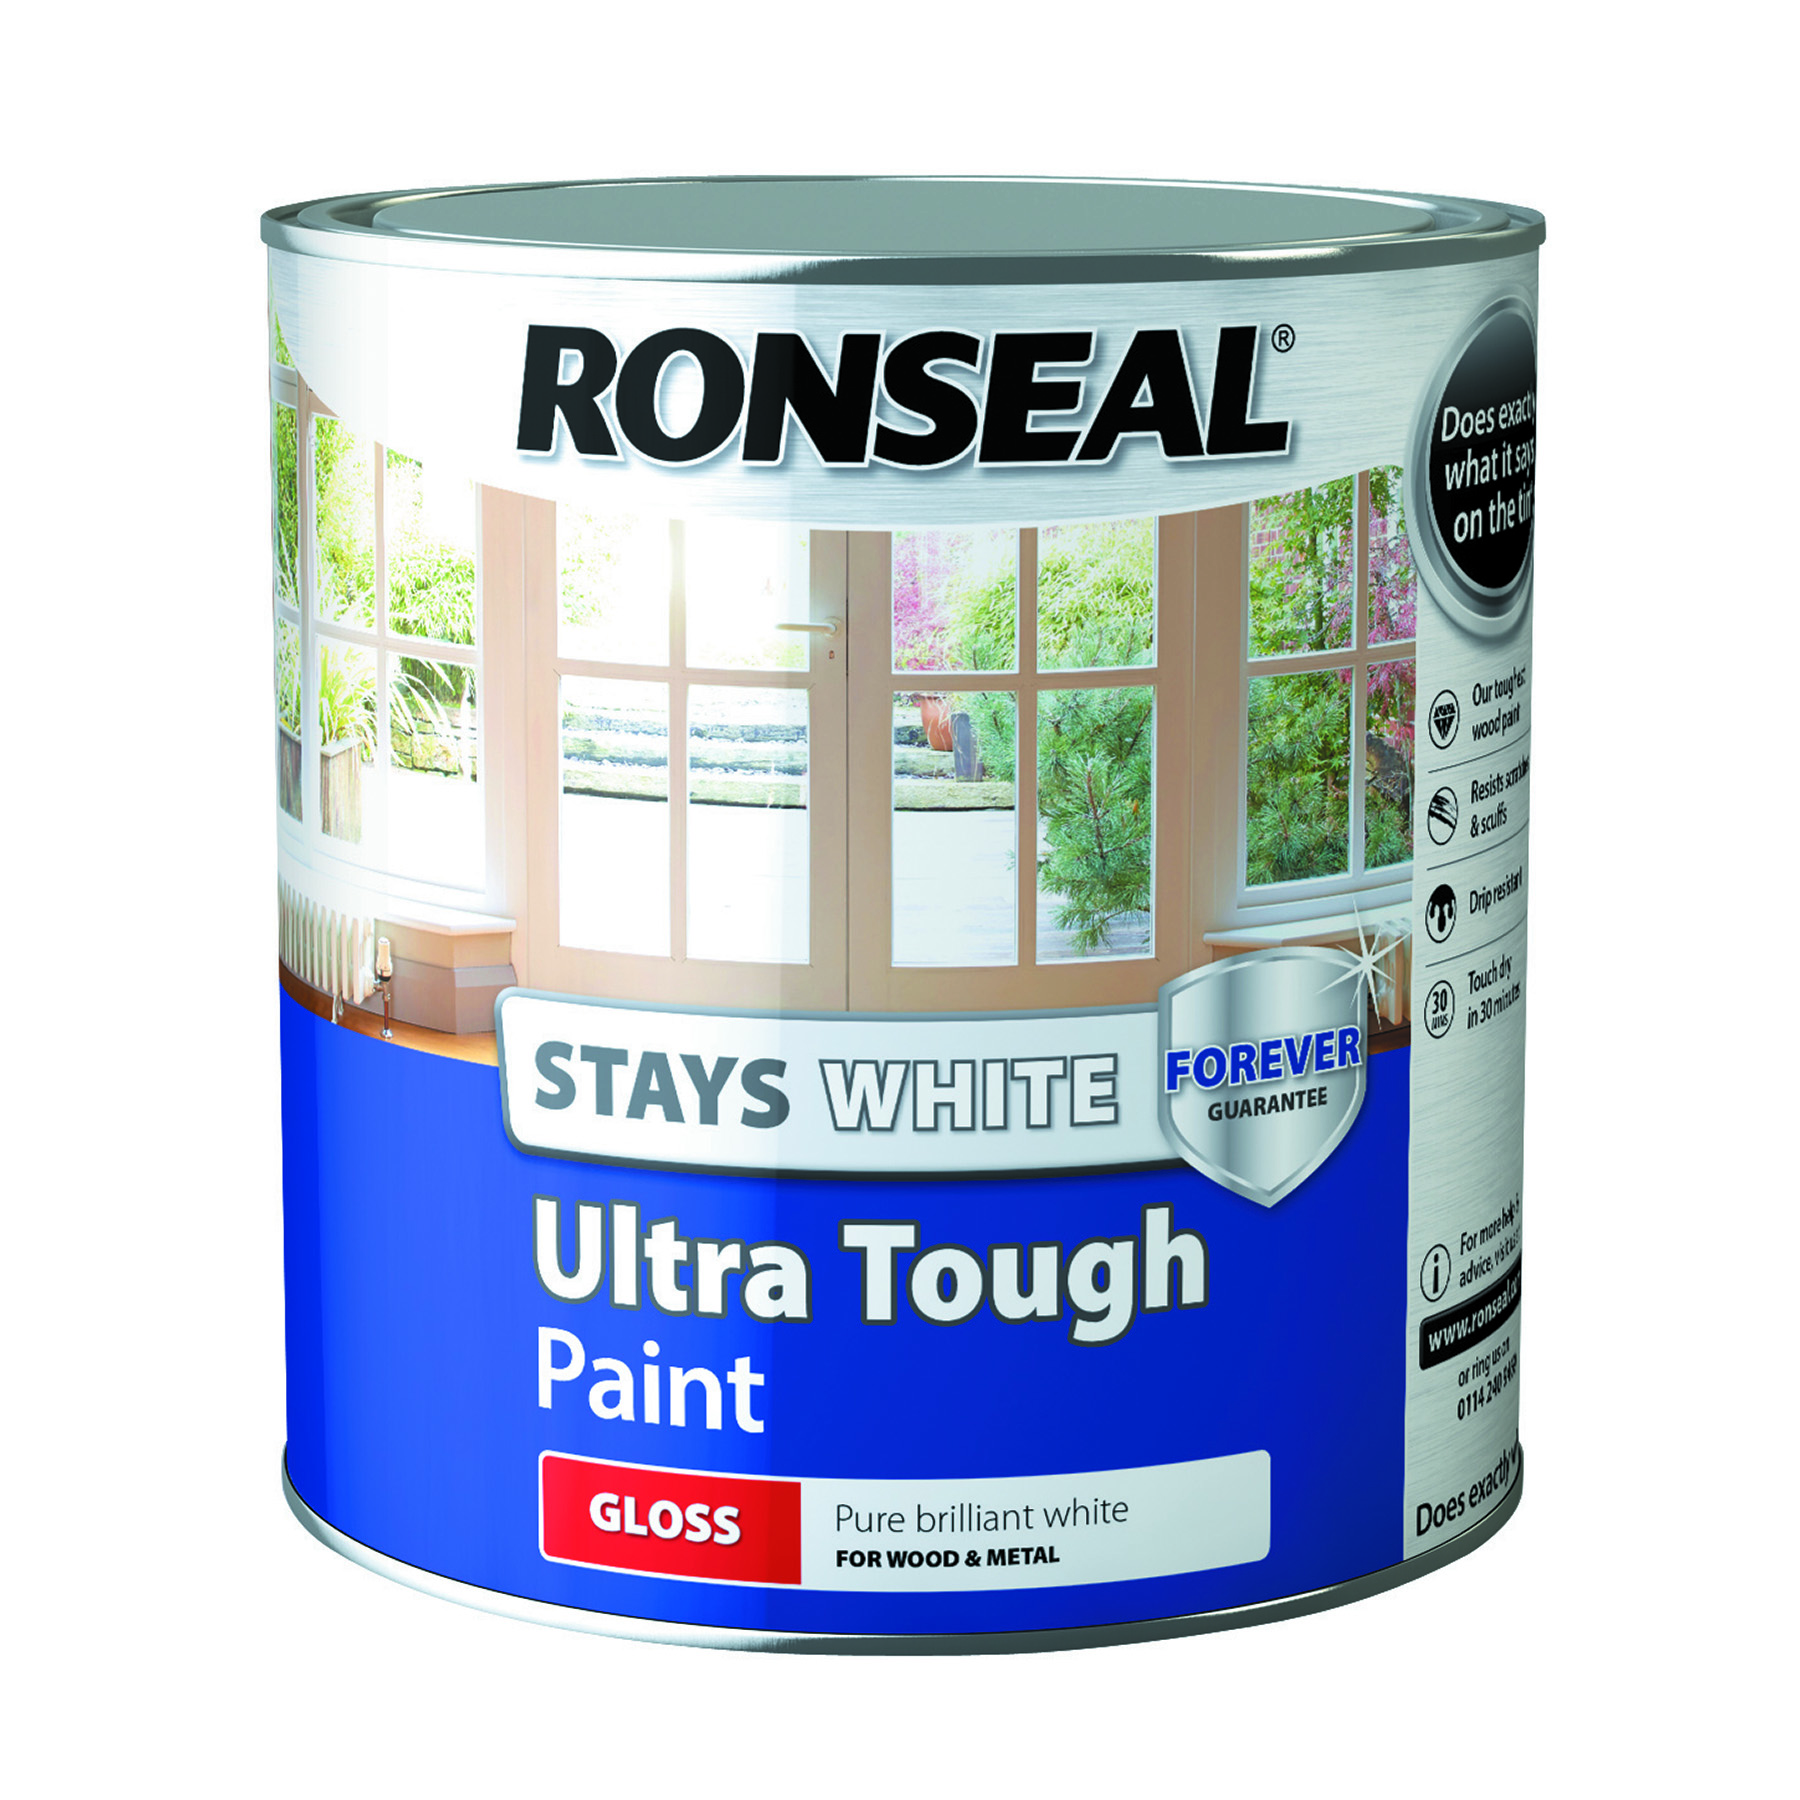 Ronseal Stays White Ultra Tough Interior Wood Paint White Gloss - 2.5l